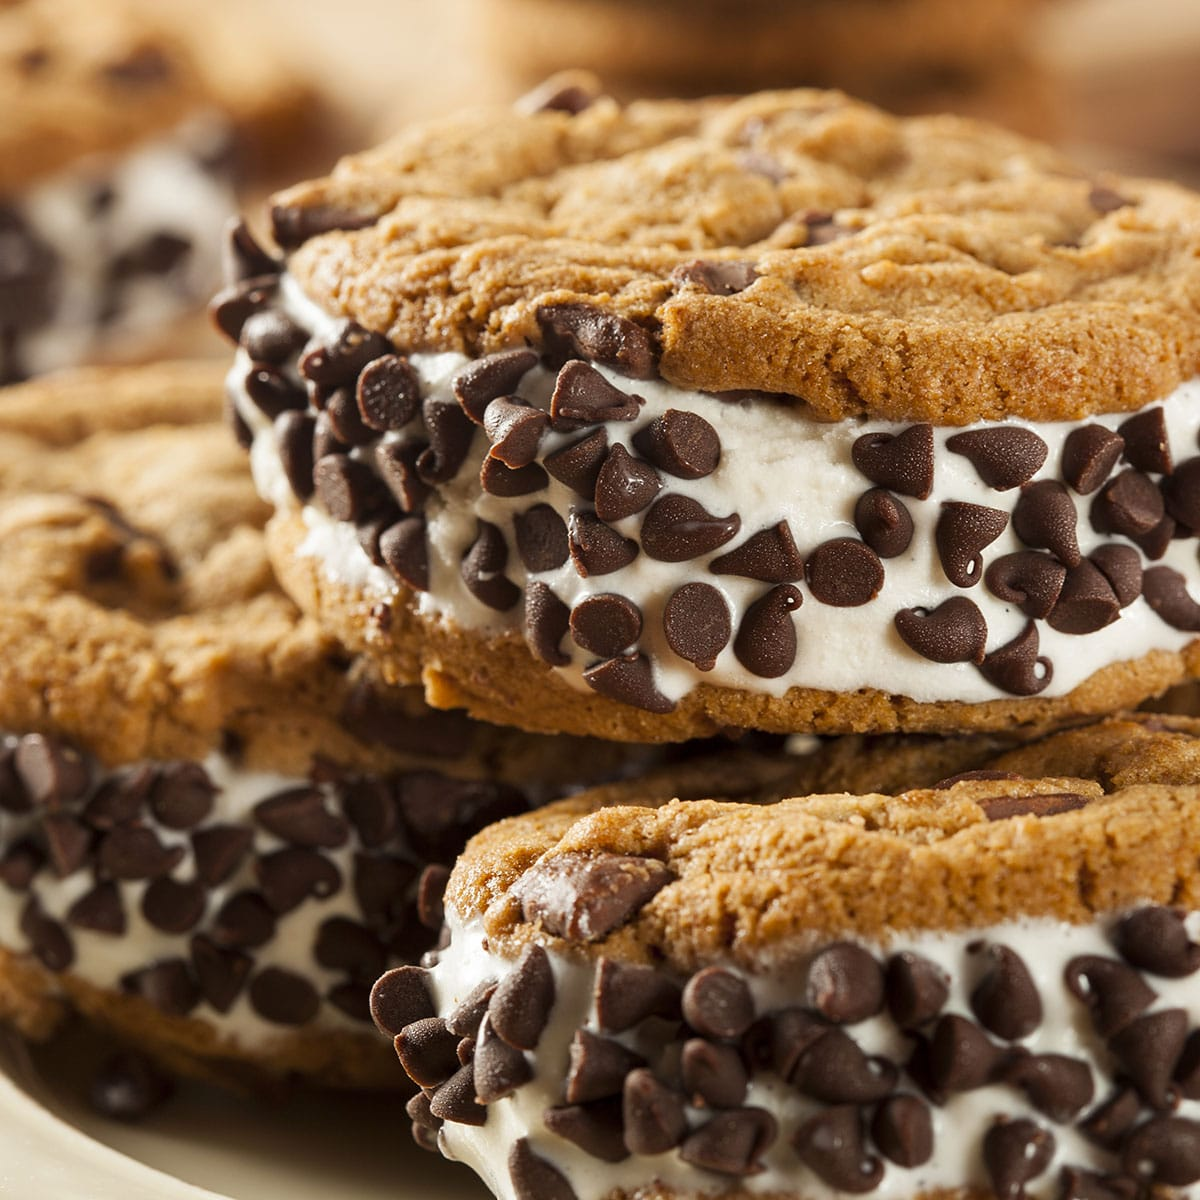 We Normally Sell Two A Day Today We Are Selling Up To 15: NATIONAL CHOCOLATE CHIP DAY - May 15, 2019